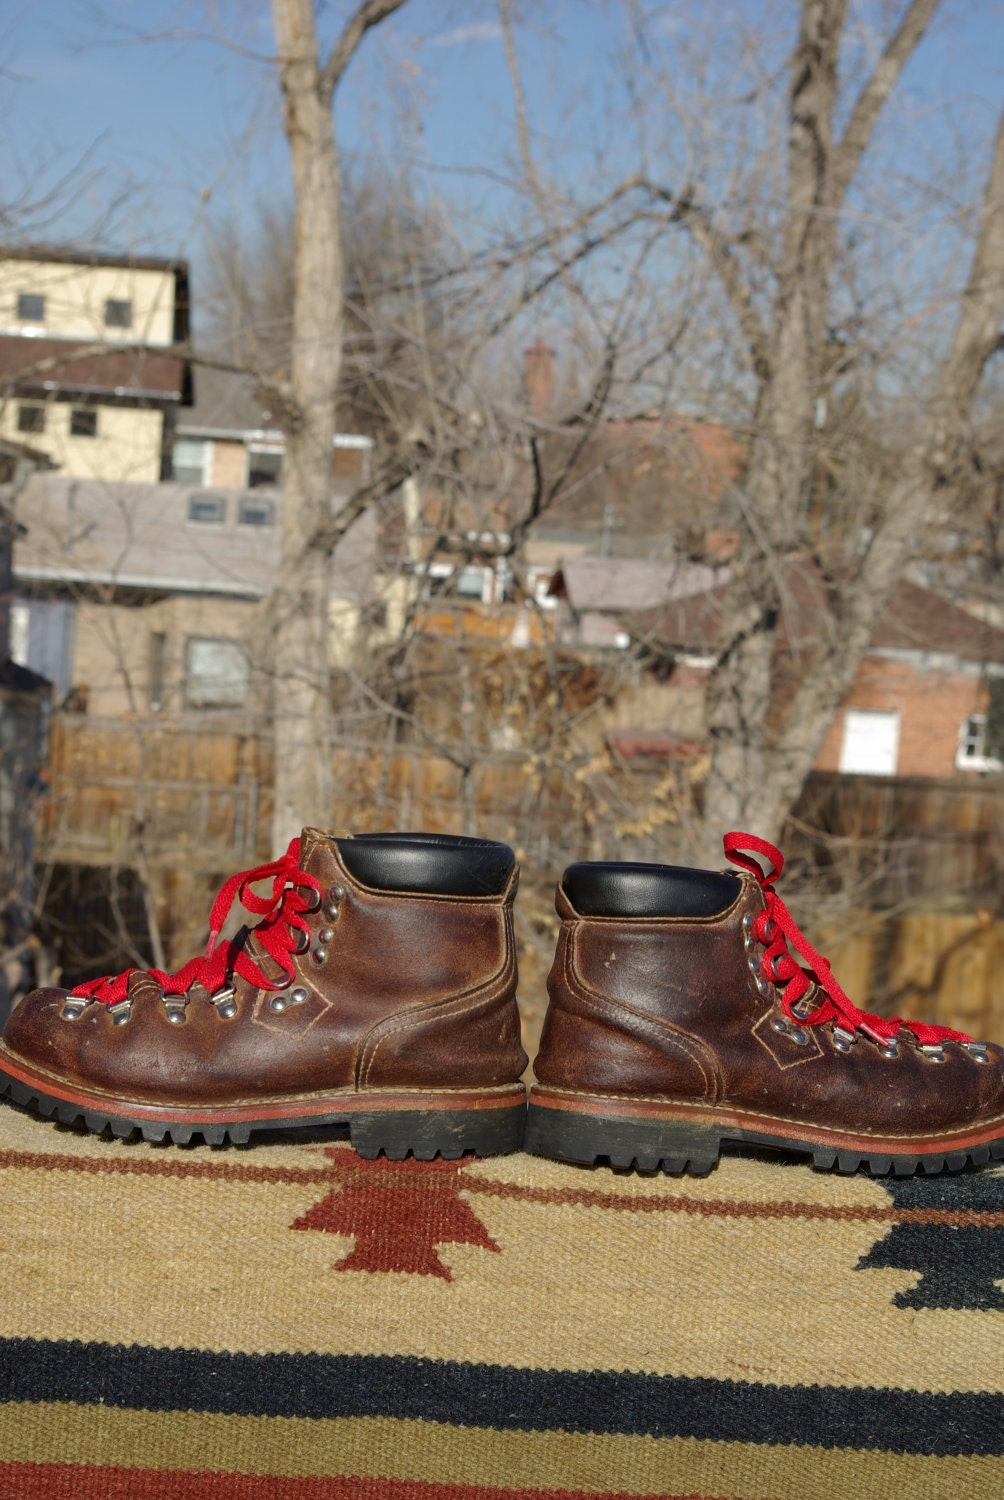 vtg. leather J.C. Penny hiking BOOTS red lace up womens size 7